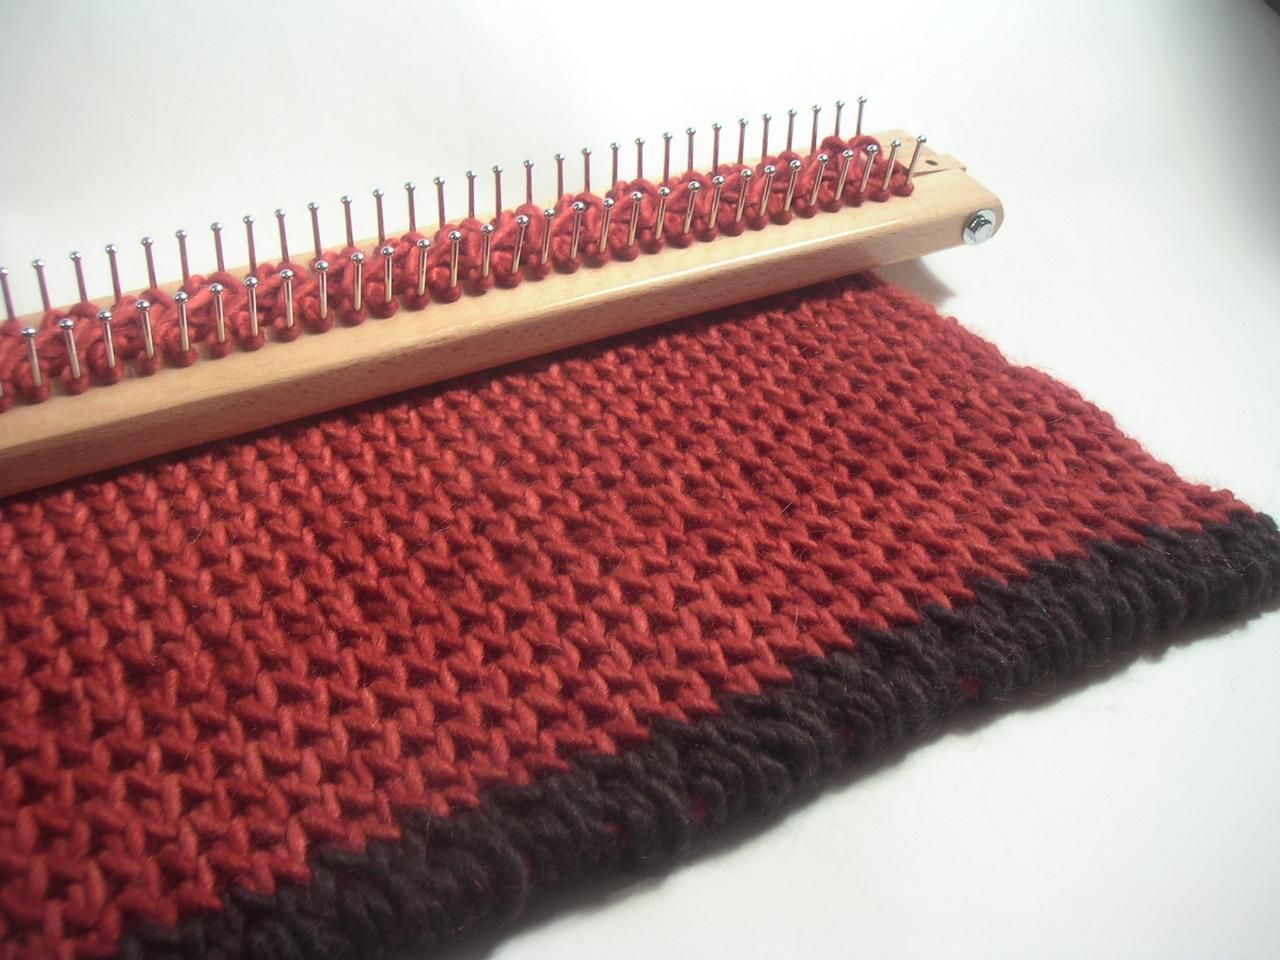 Knitting Loom Projects : Free knitting board patterns with the new heavy duty